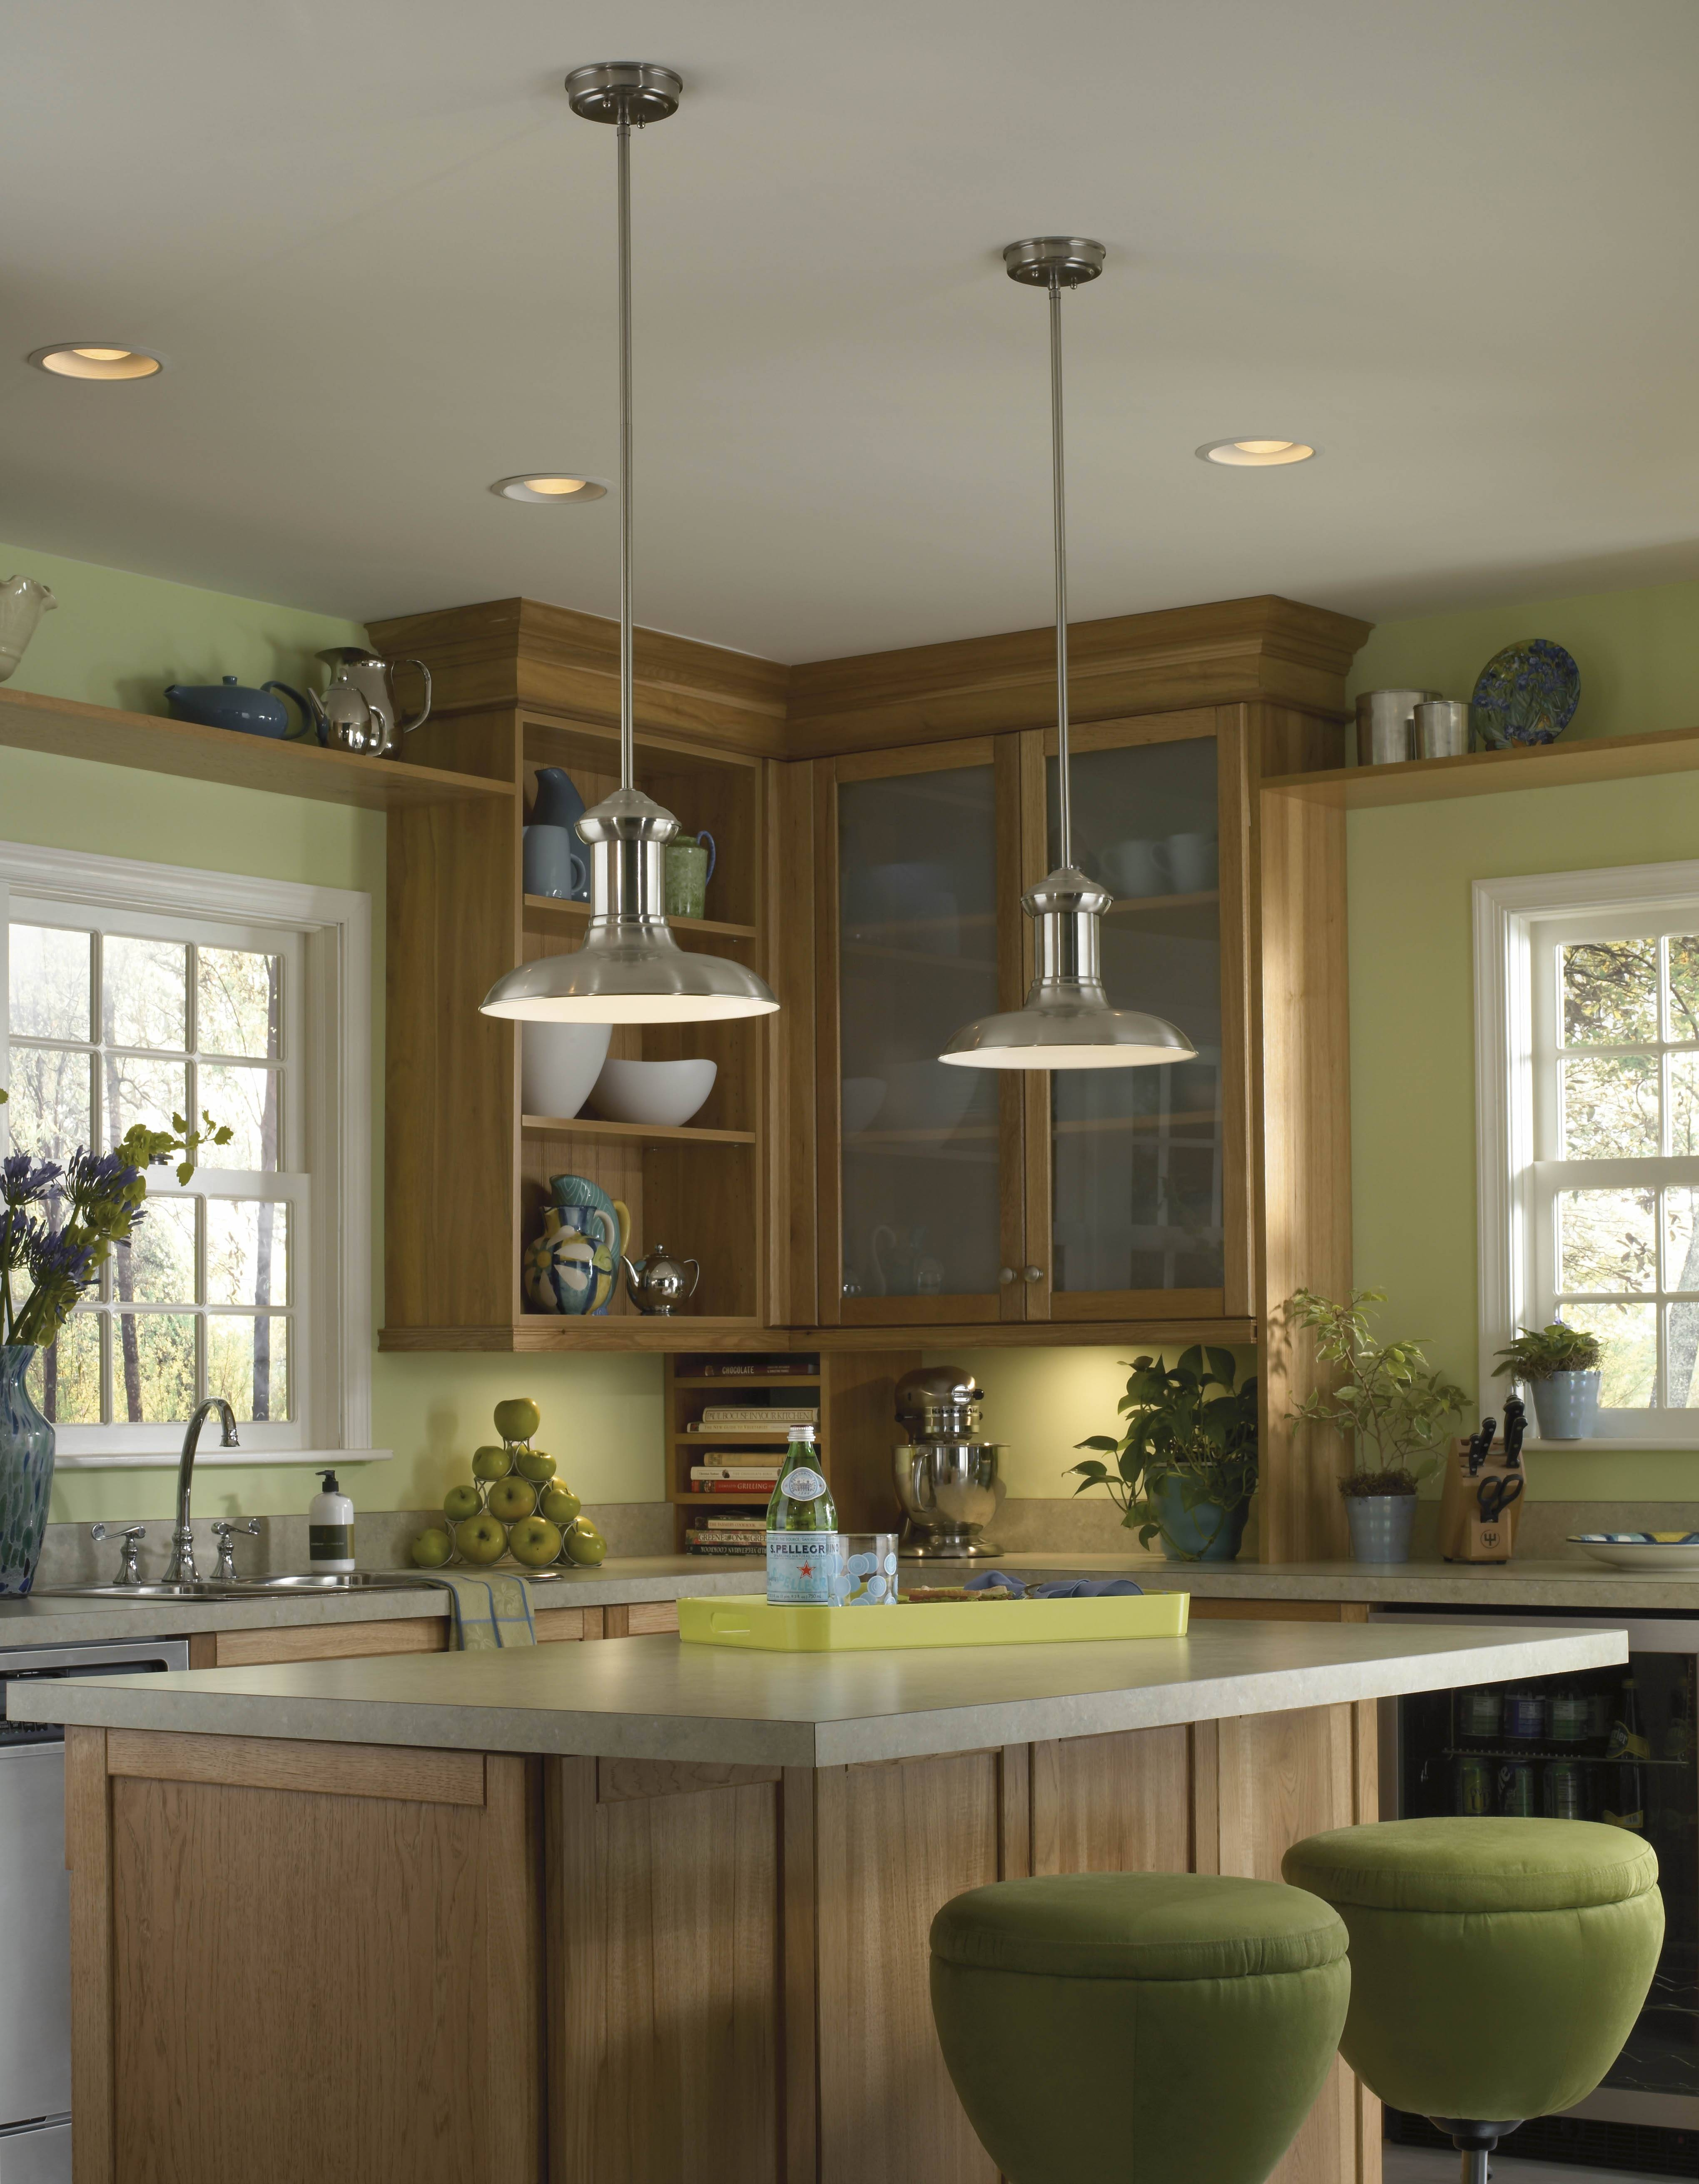 Mini Pendant Lights Over Kitchen Island Drop Light Fixtures inside Mini Pendant Lights Over Kitchen Island (Image 11 of 15)